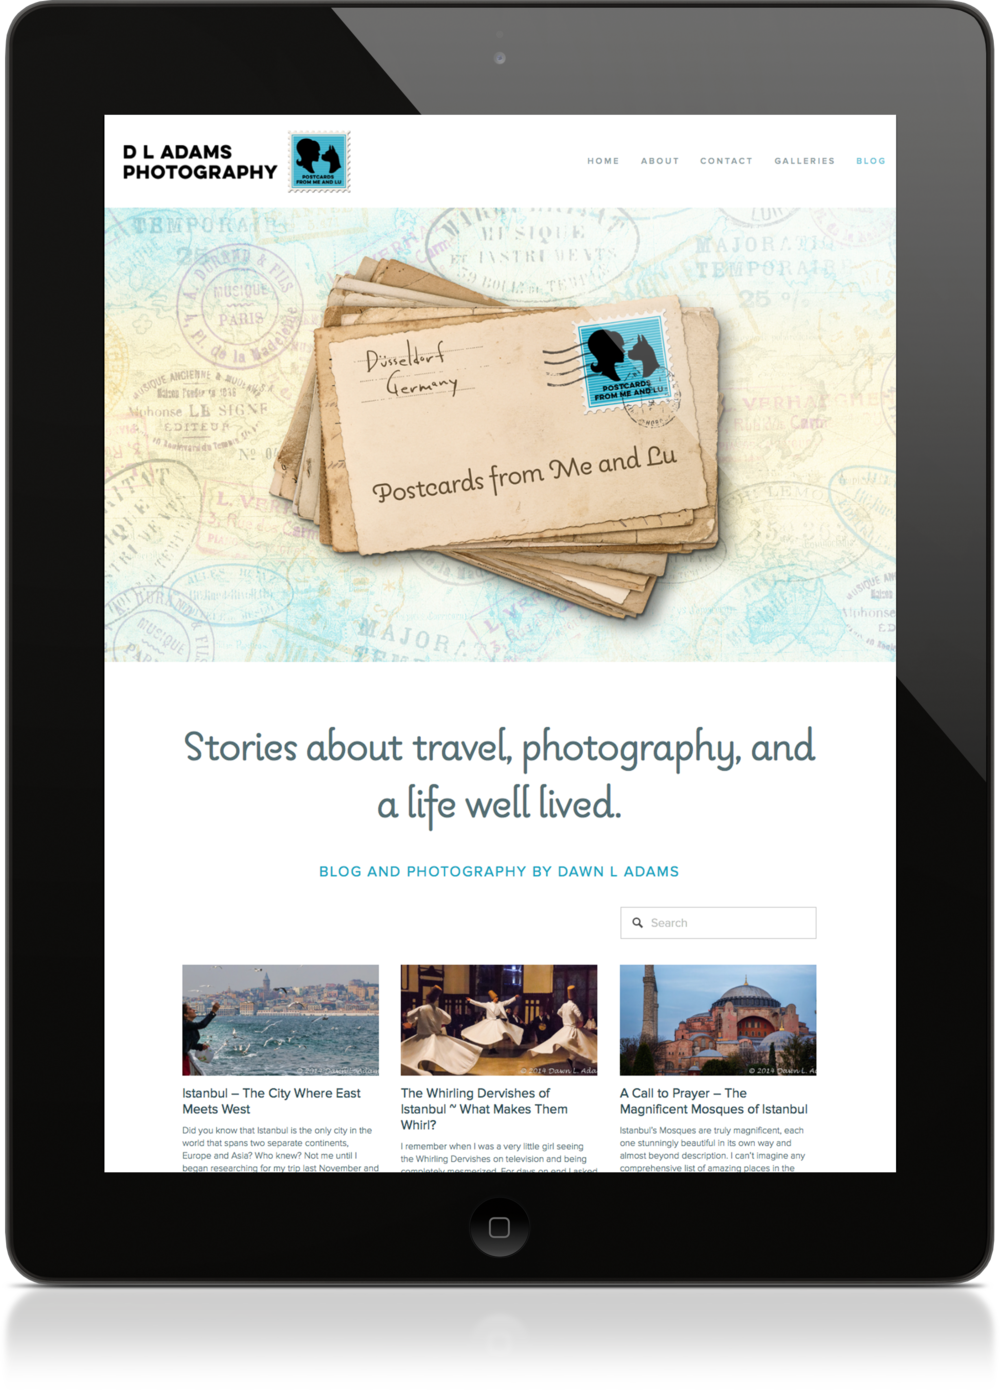 DA_Website_Blog-ipad_1.png